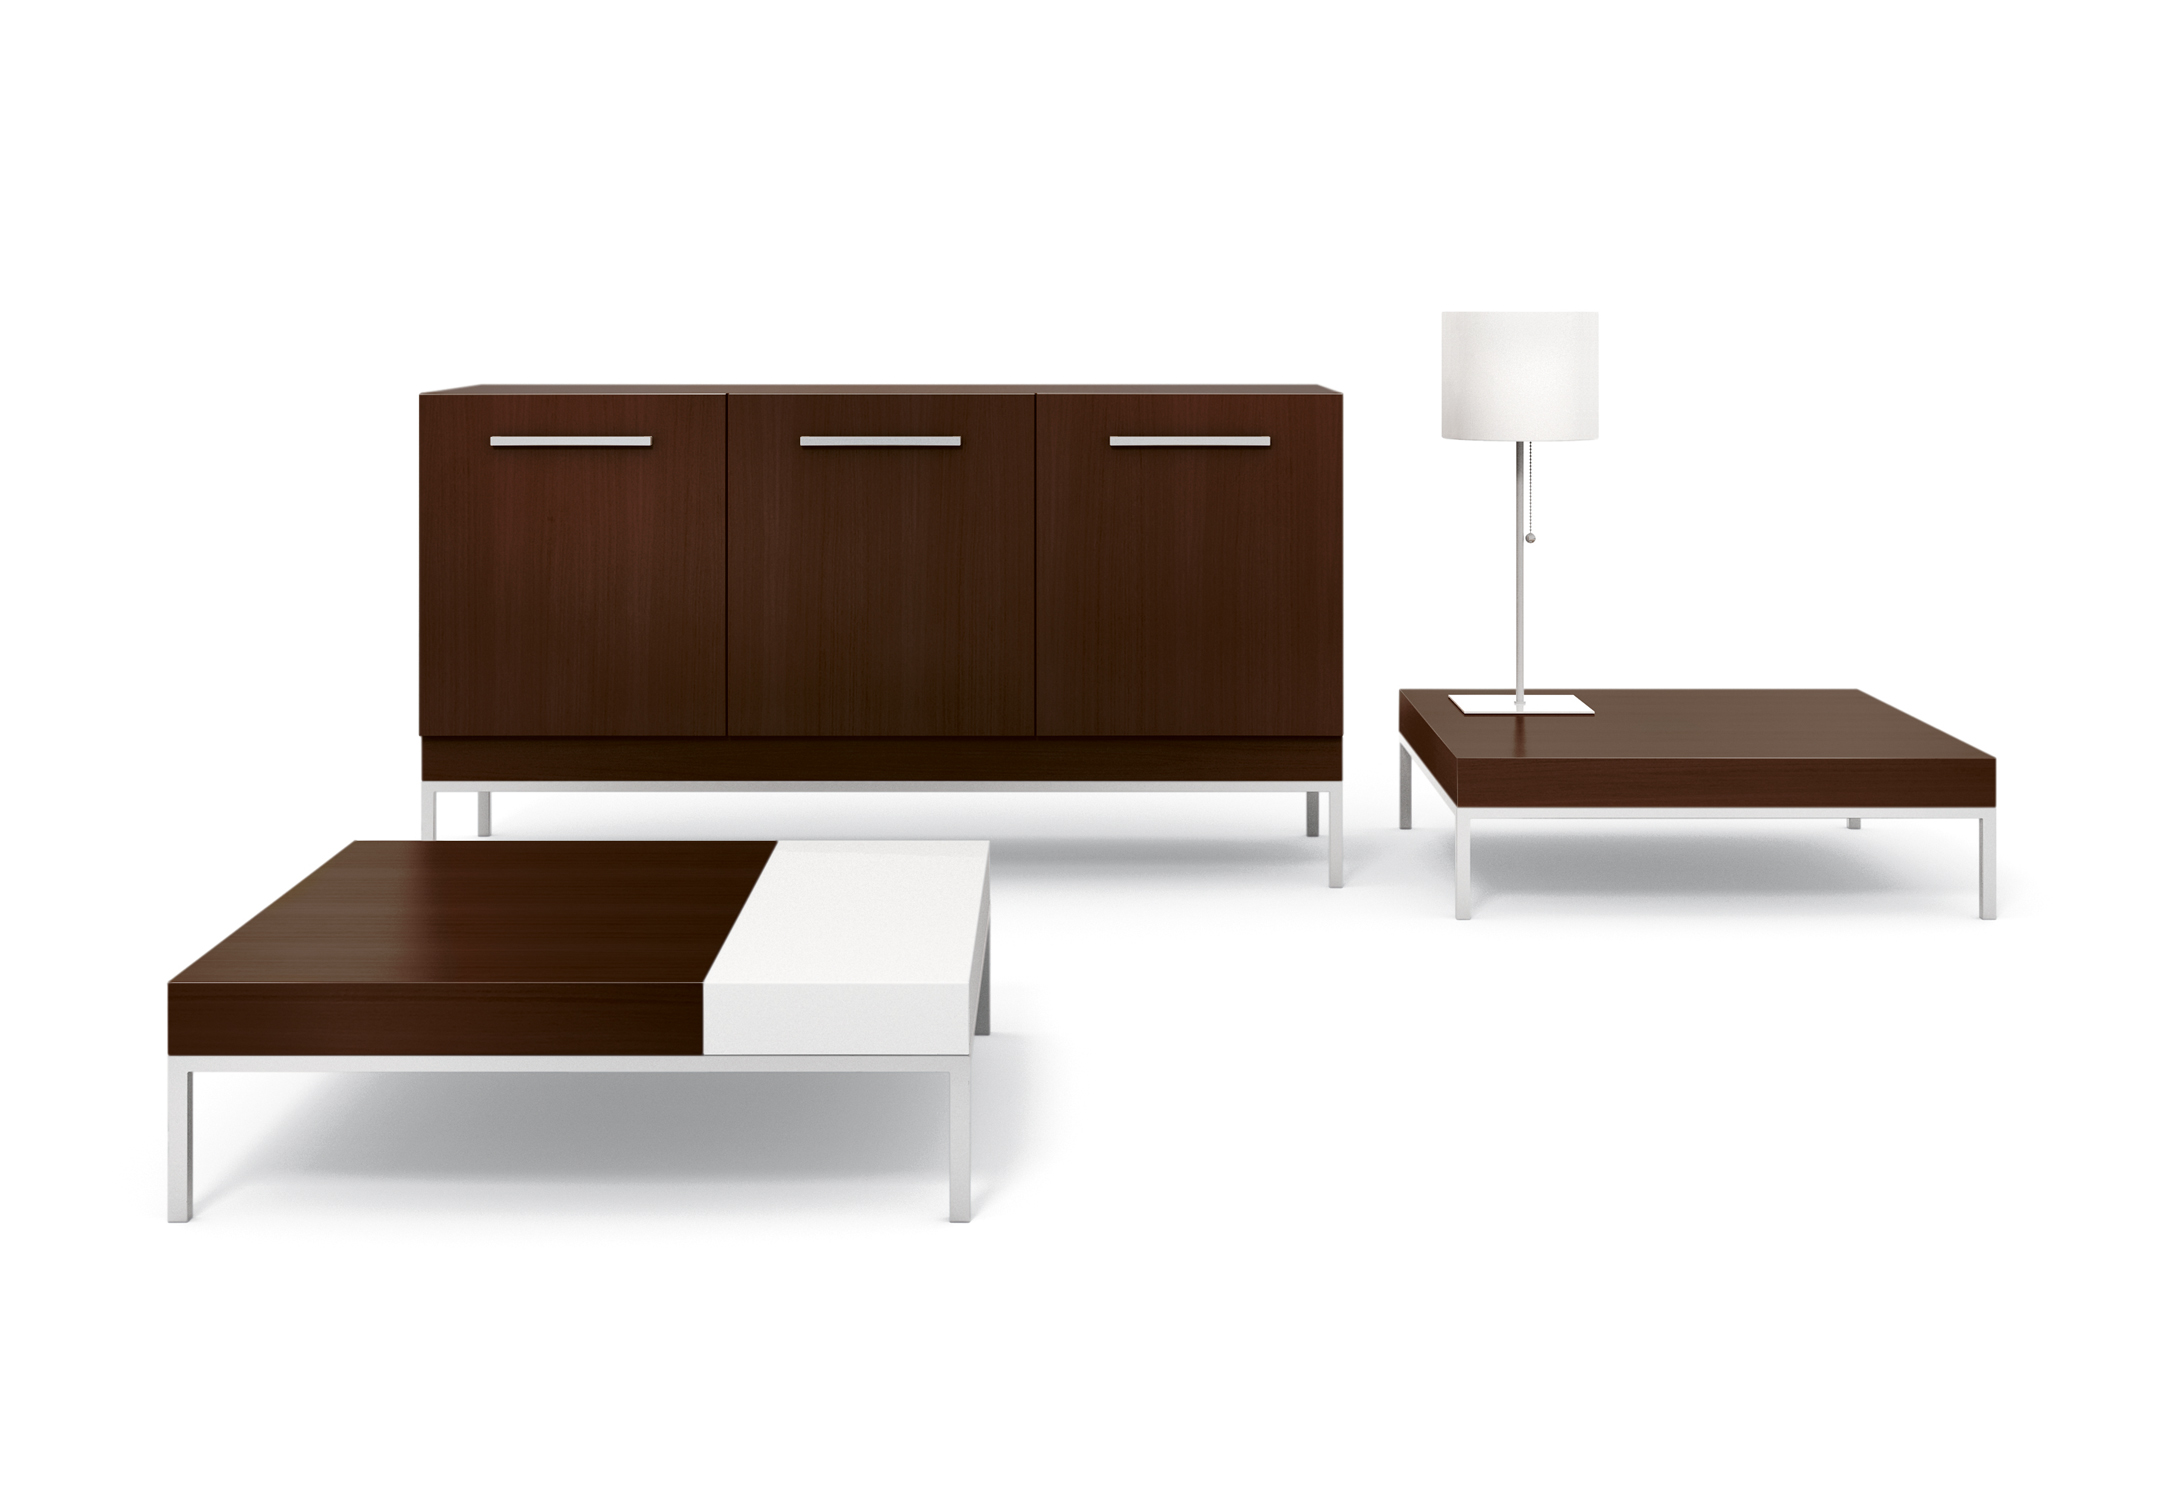 Occasional Tables Contract Furnishings Denver 39 S Premier New And Used Furniture